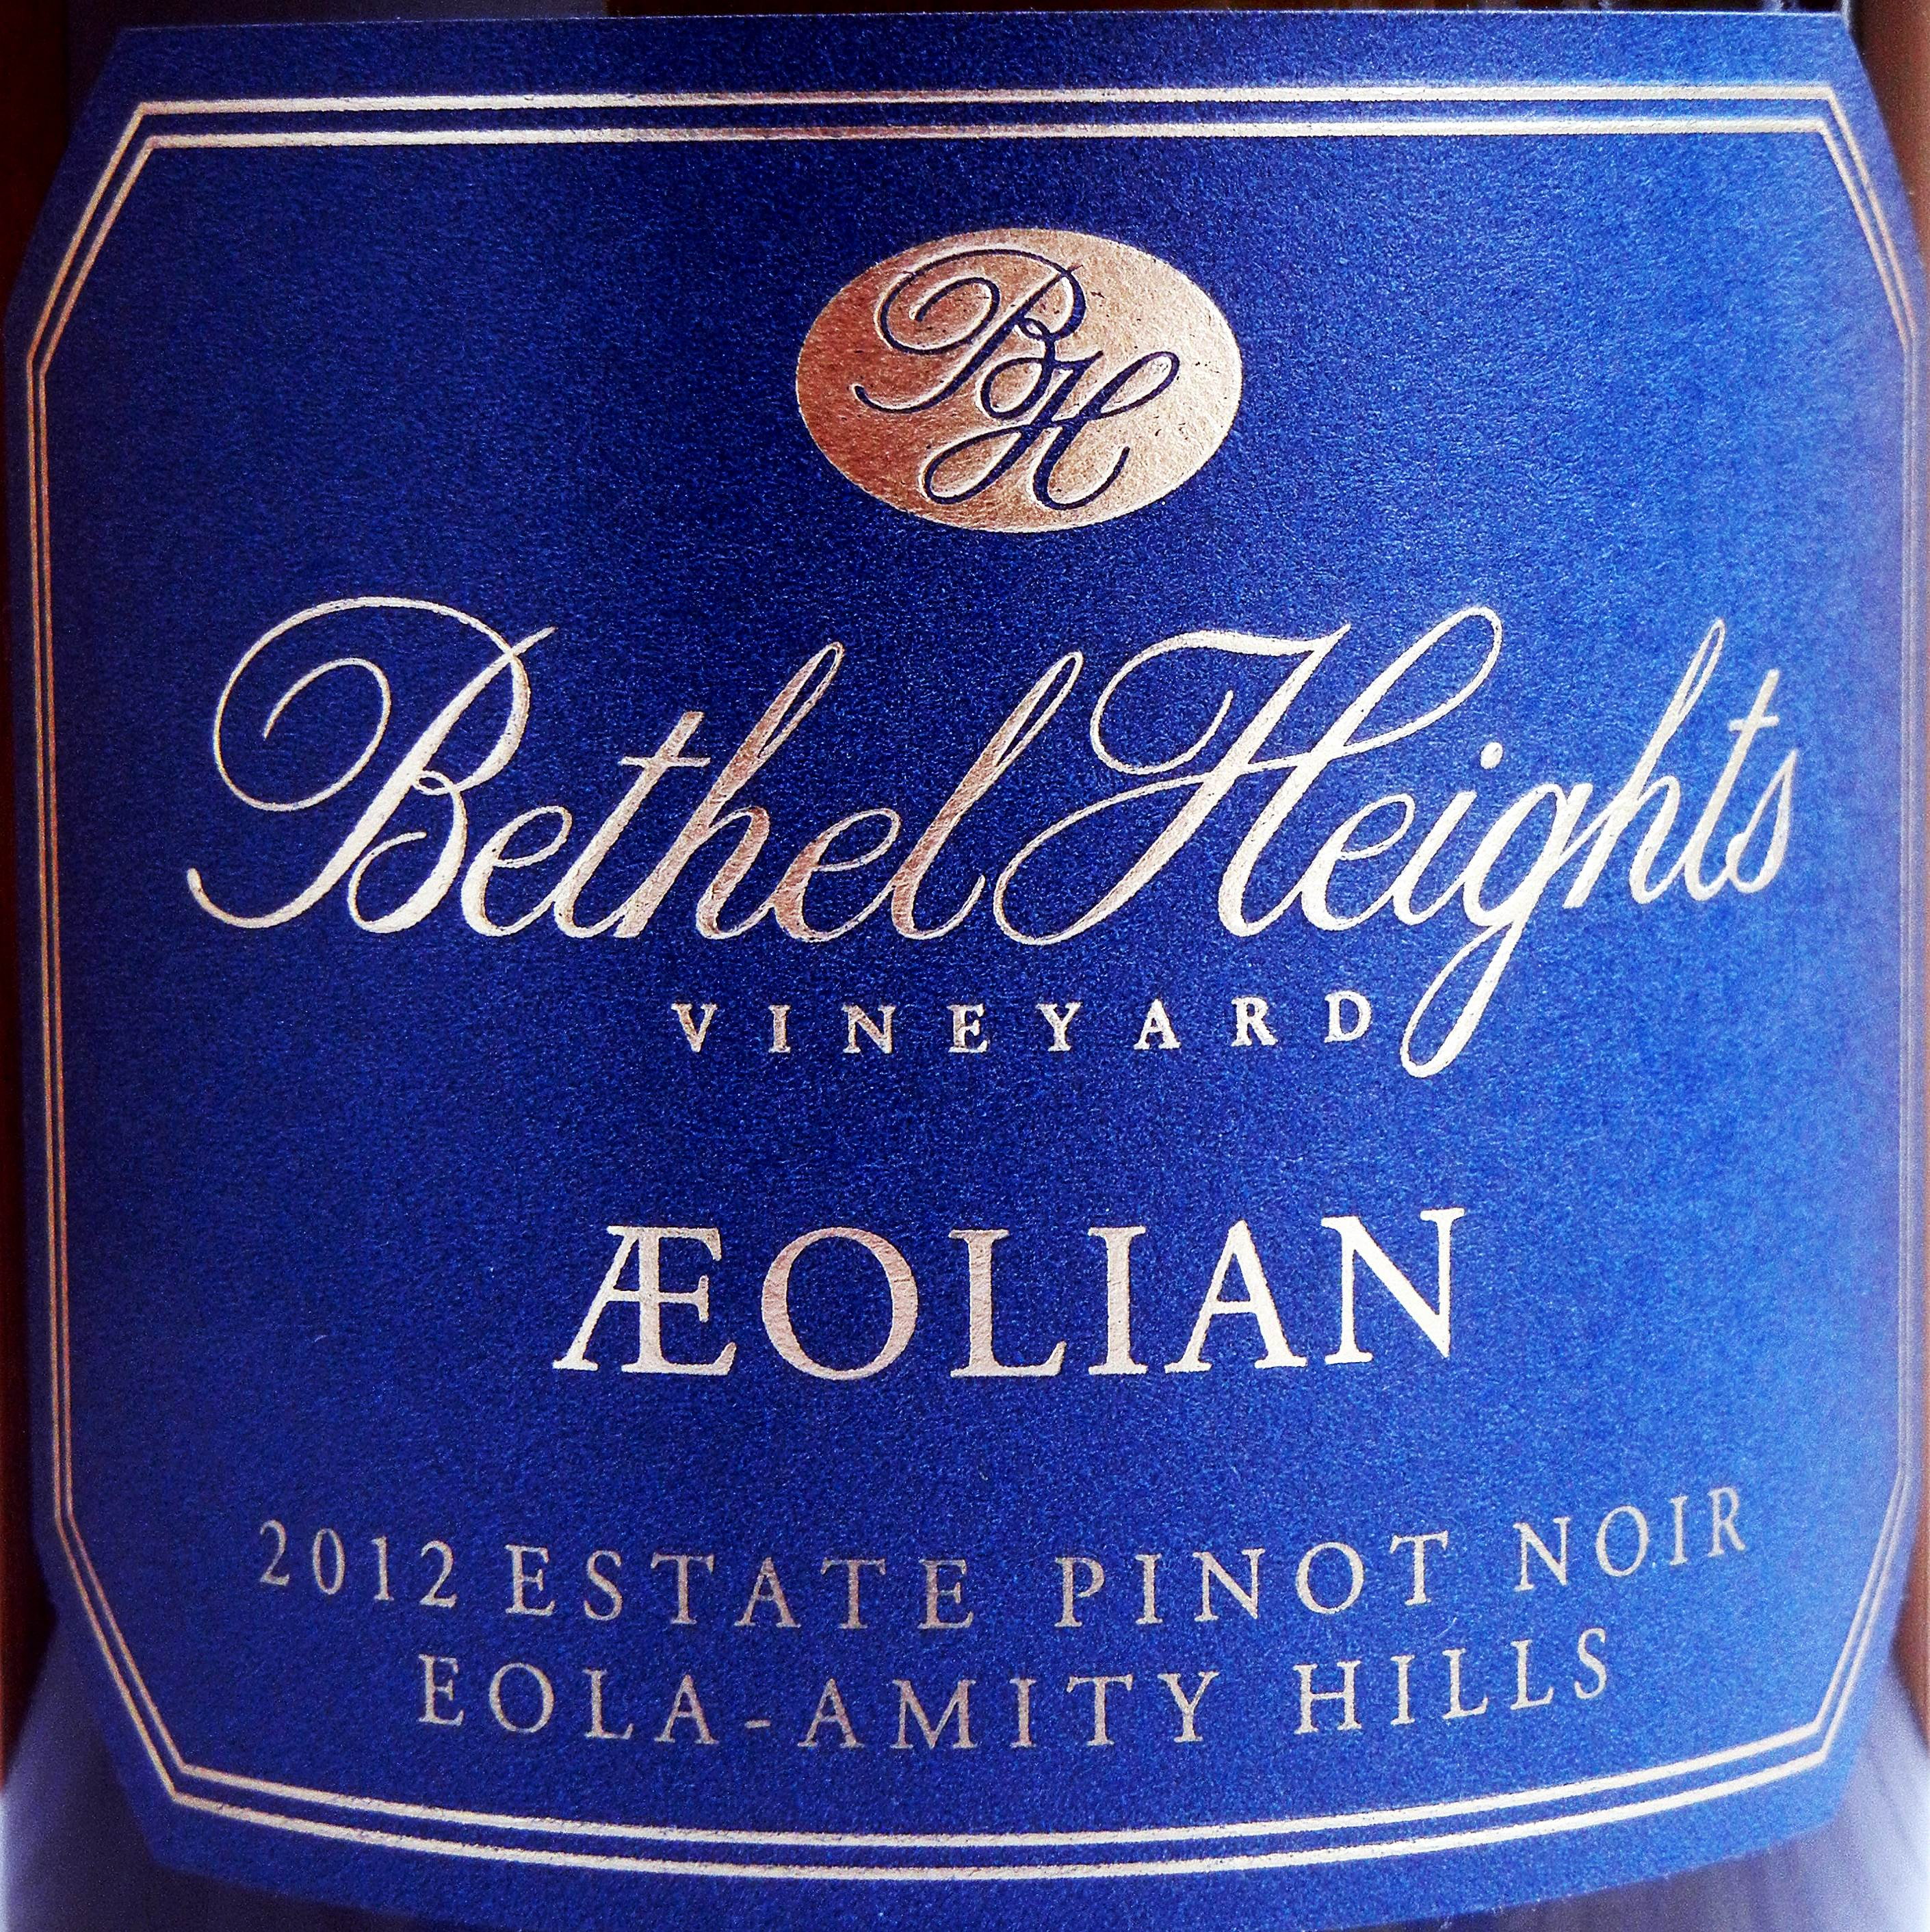 Bethel Heights Aeolian Pinot Noir 2012 Label - BC Pinot Noir Tasting Review 22